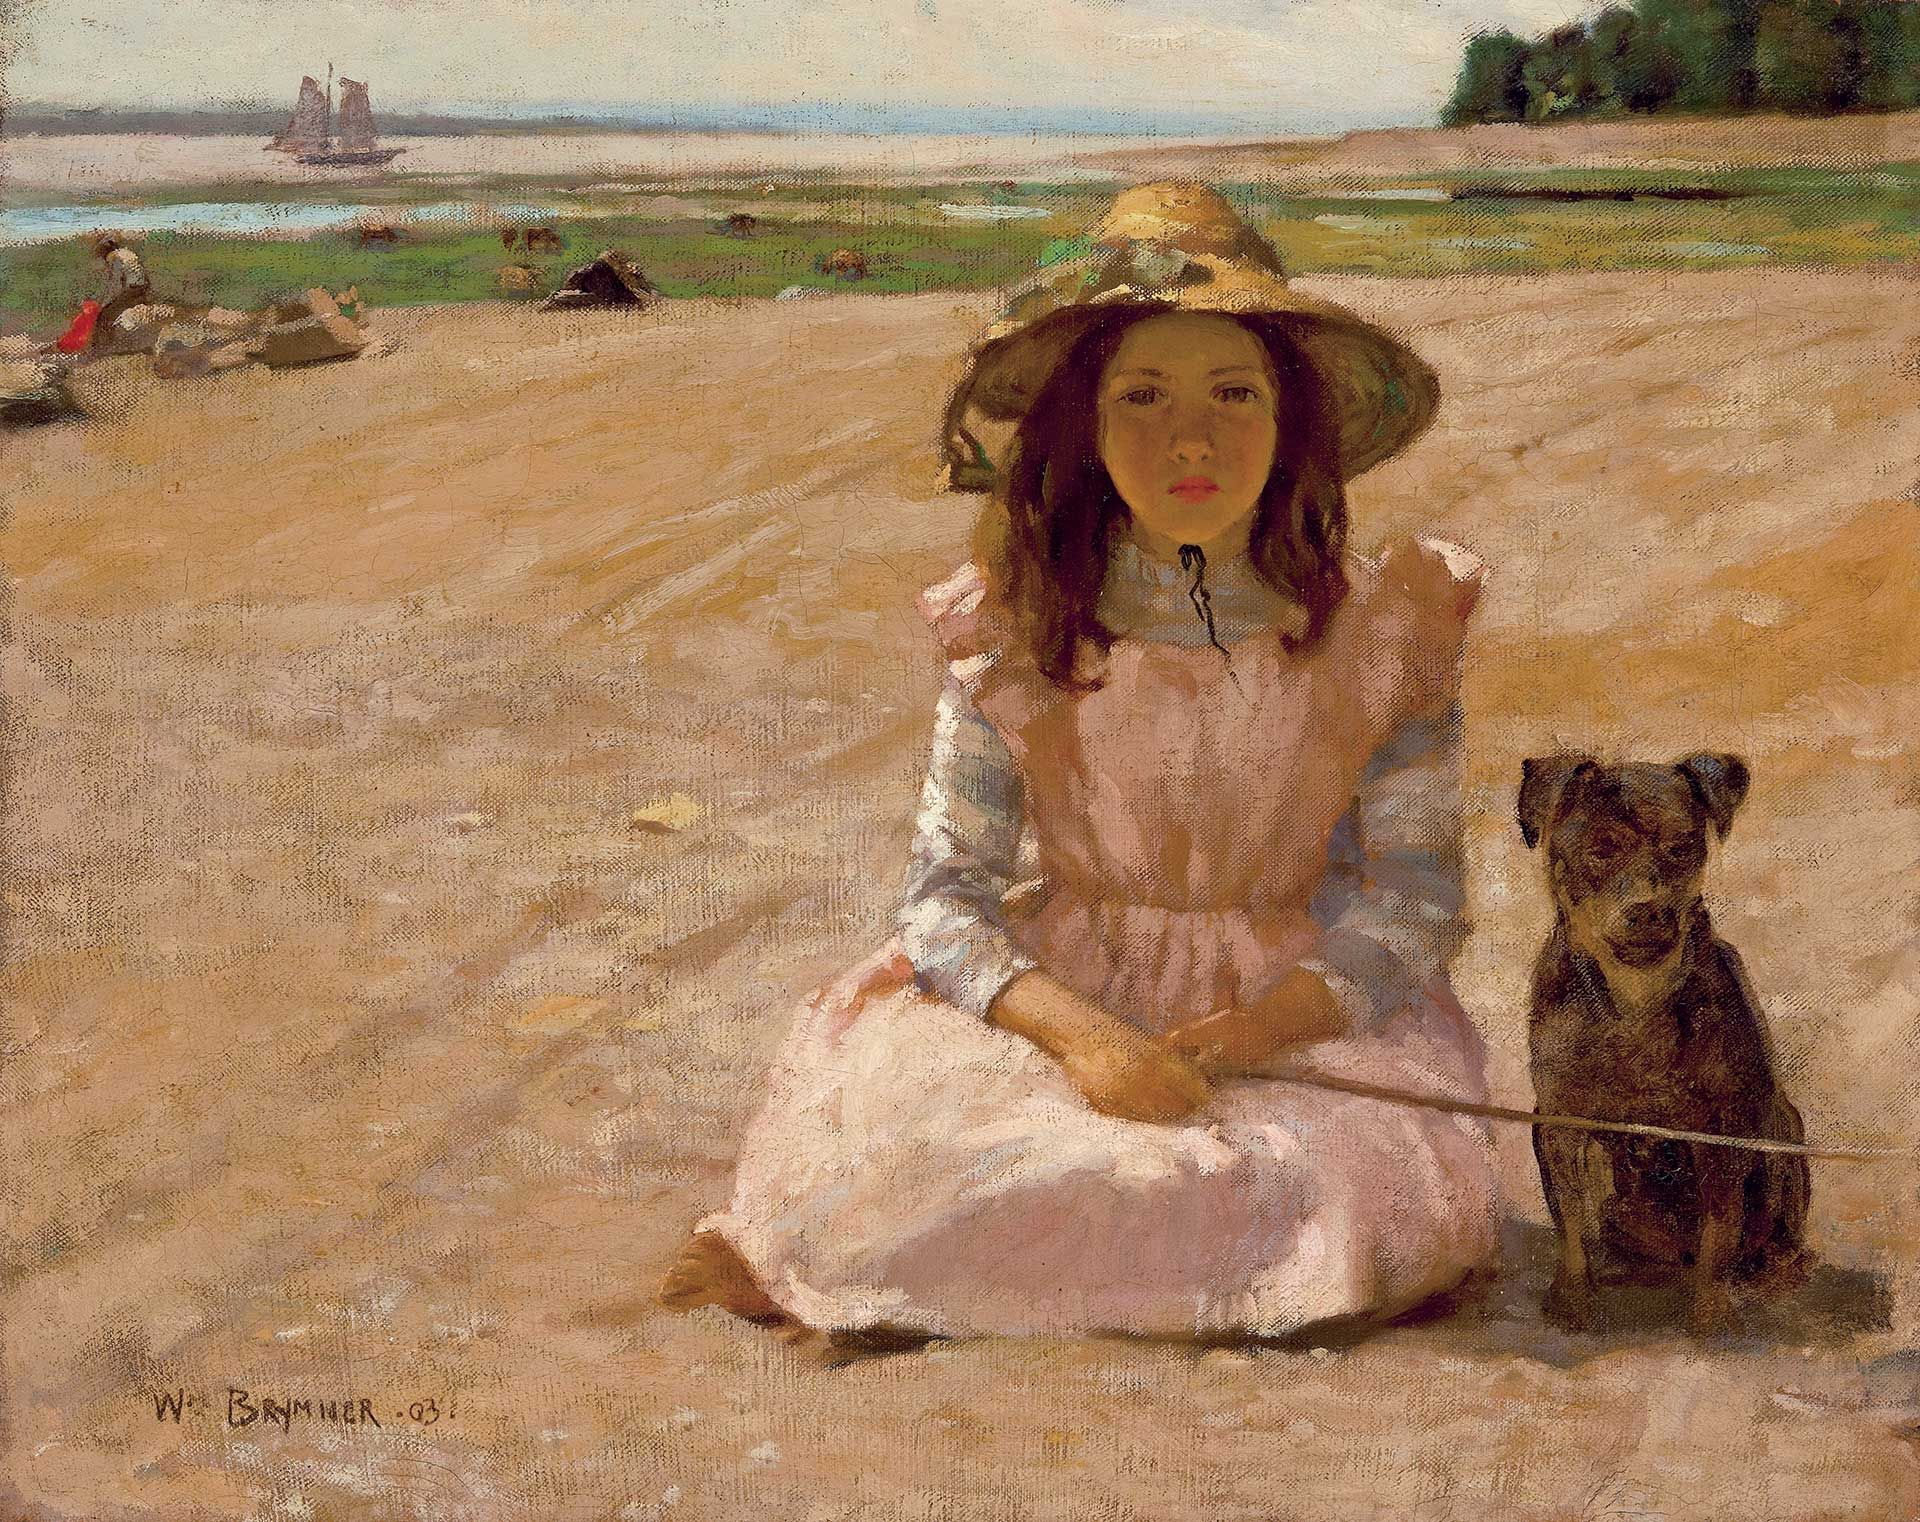 William Brymner, Girl with a Dog